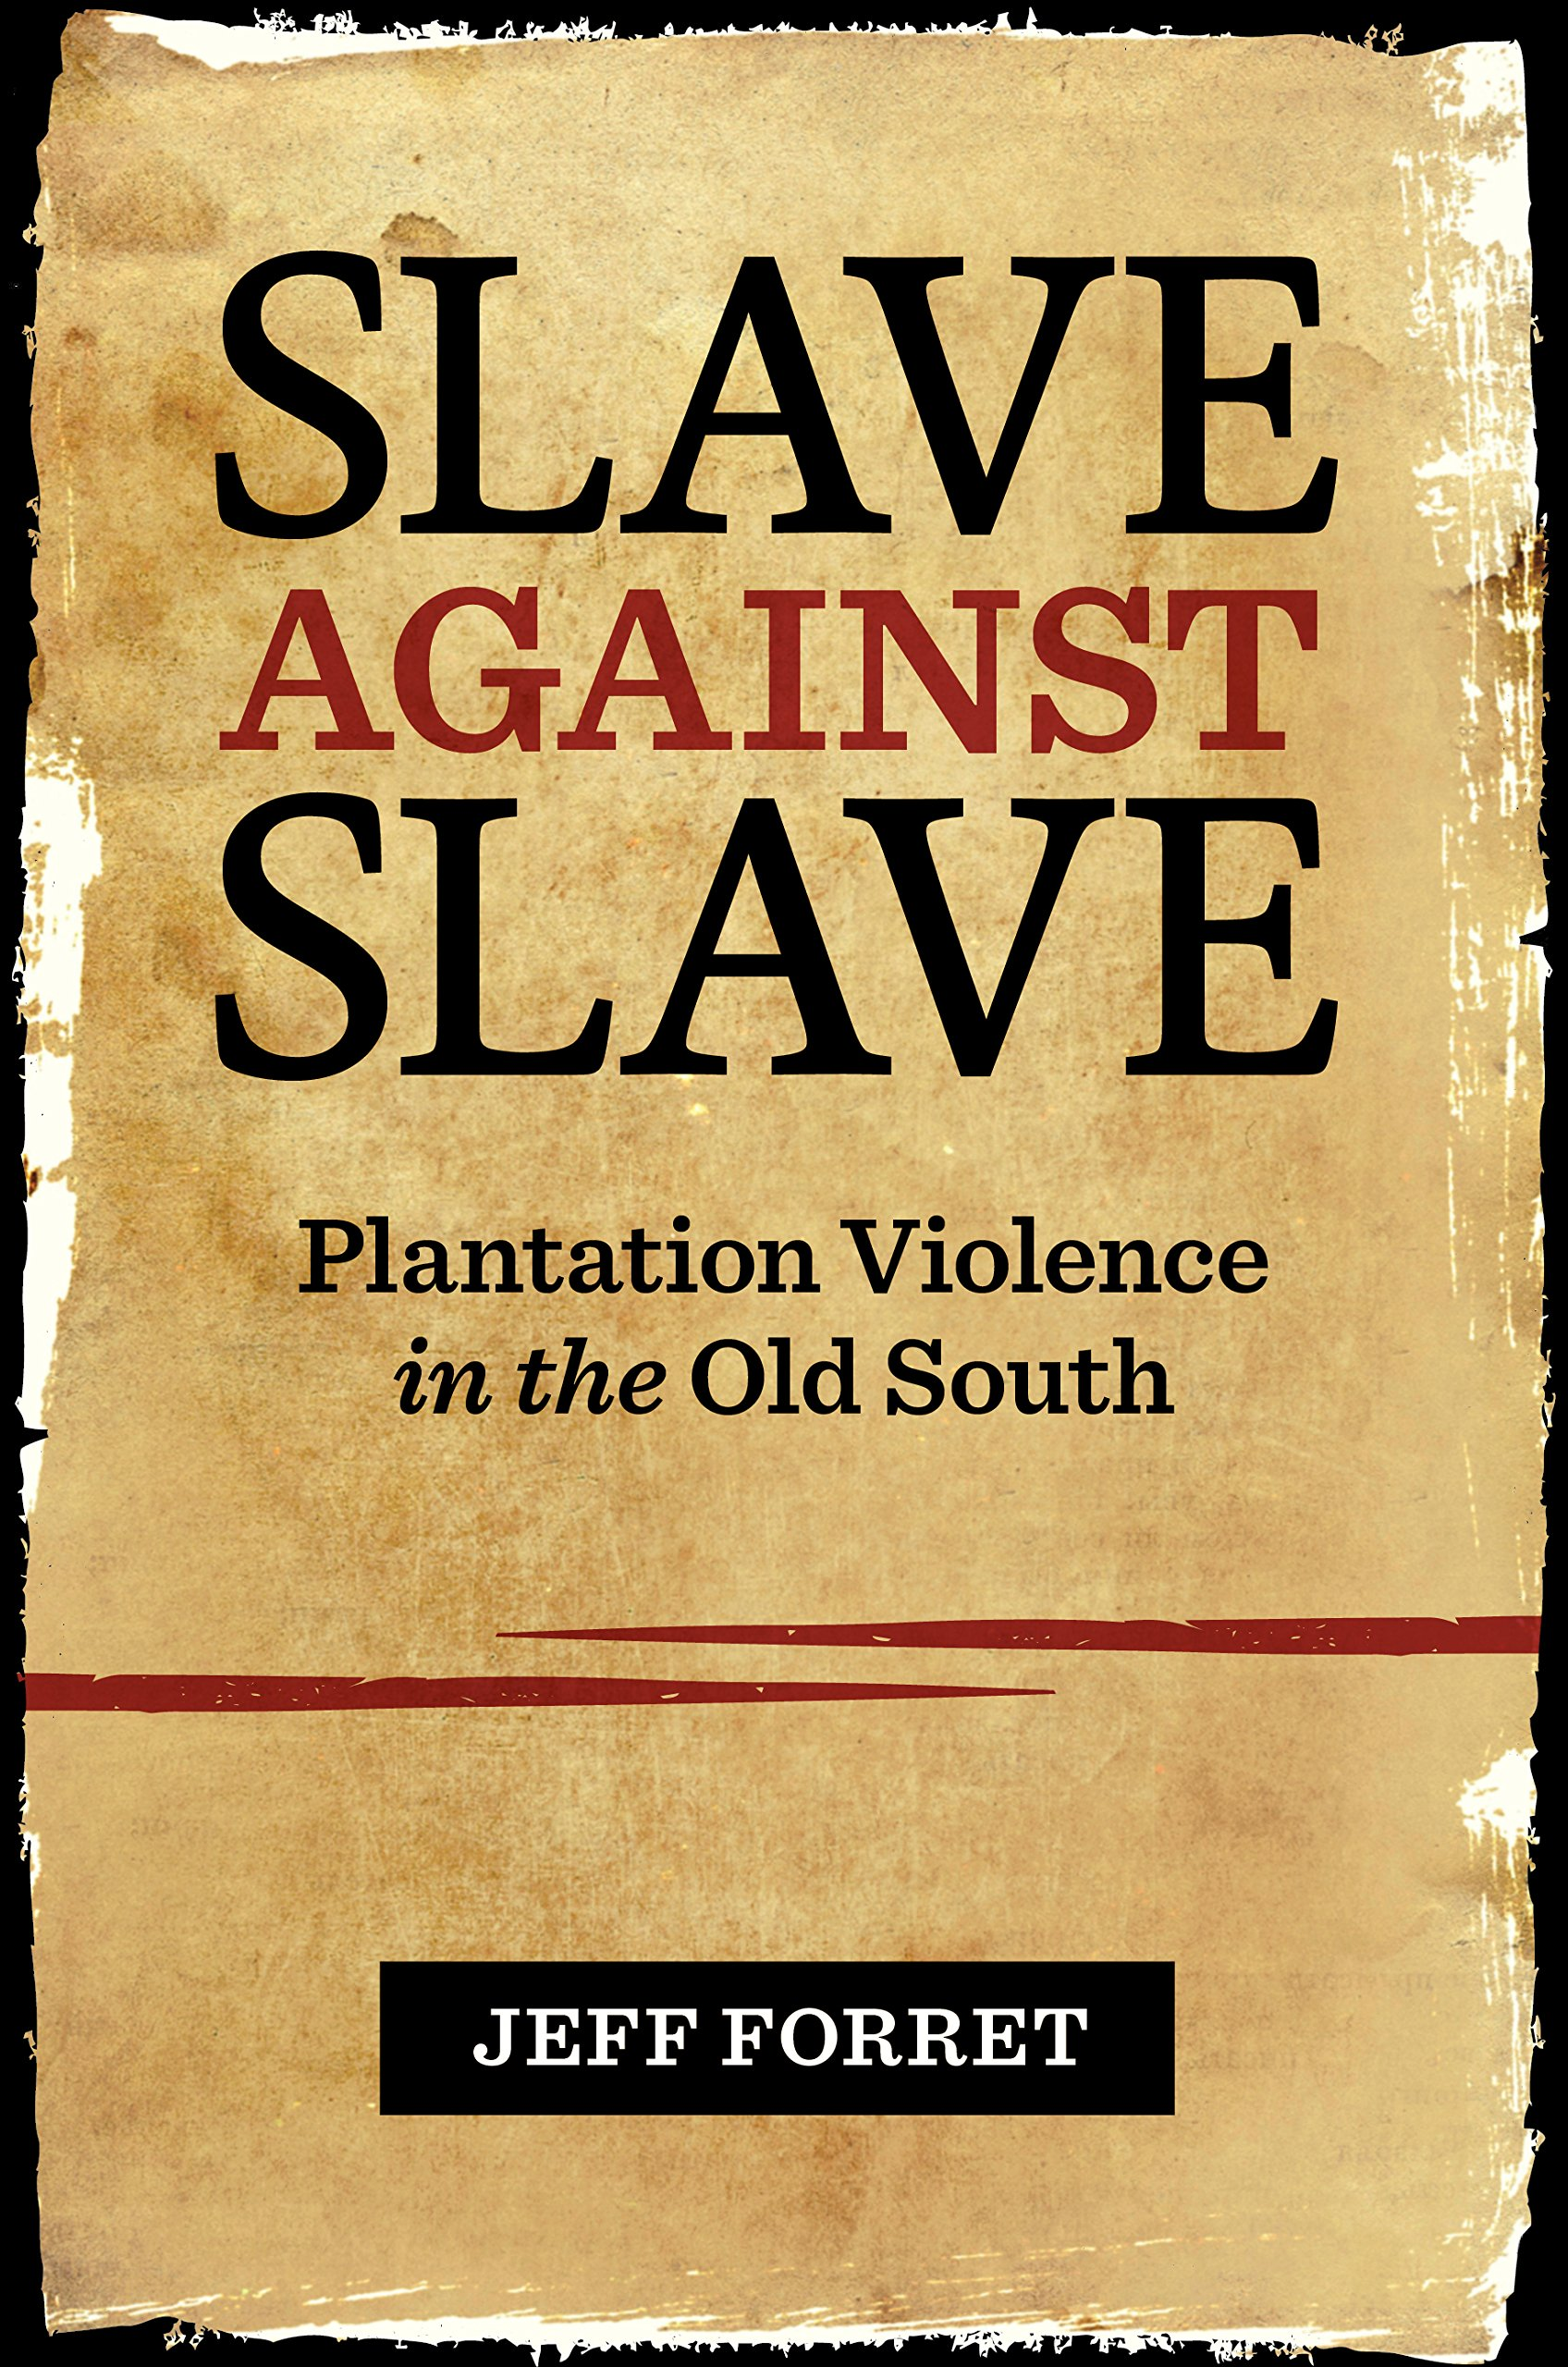 Slave Against Slave: Plantation Violence in the Old South by Jeff Forret